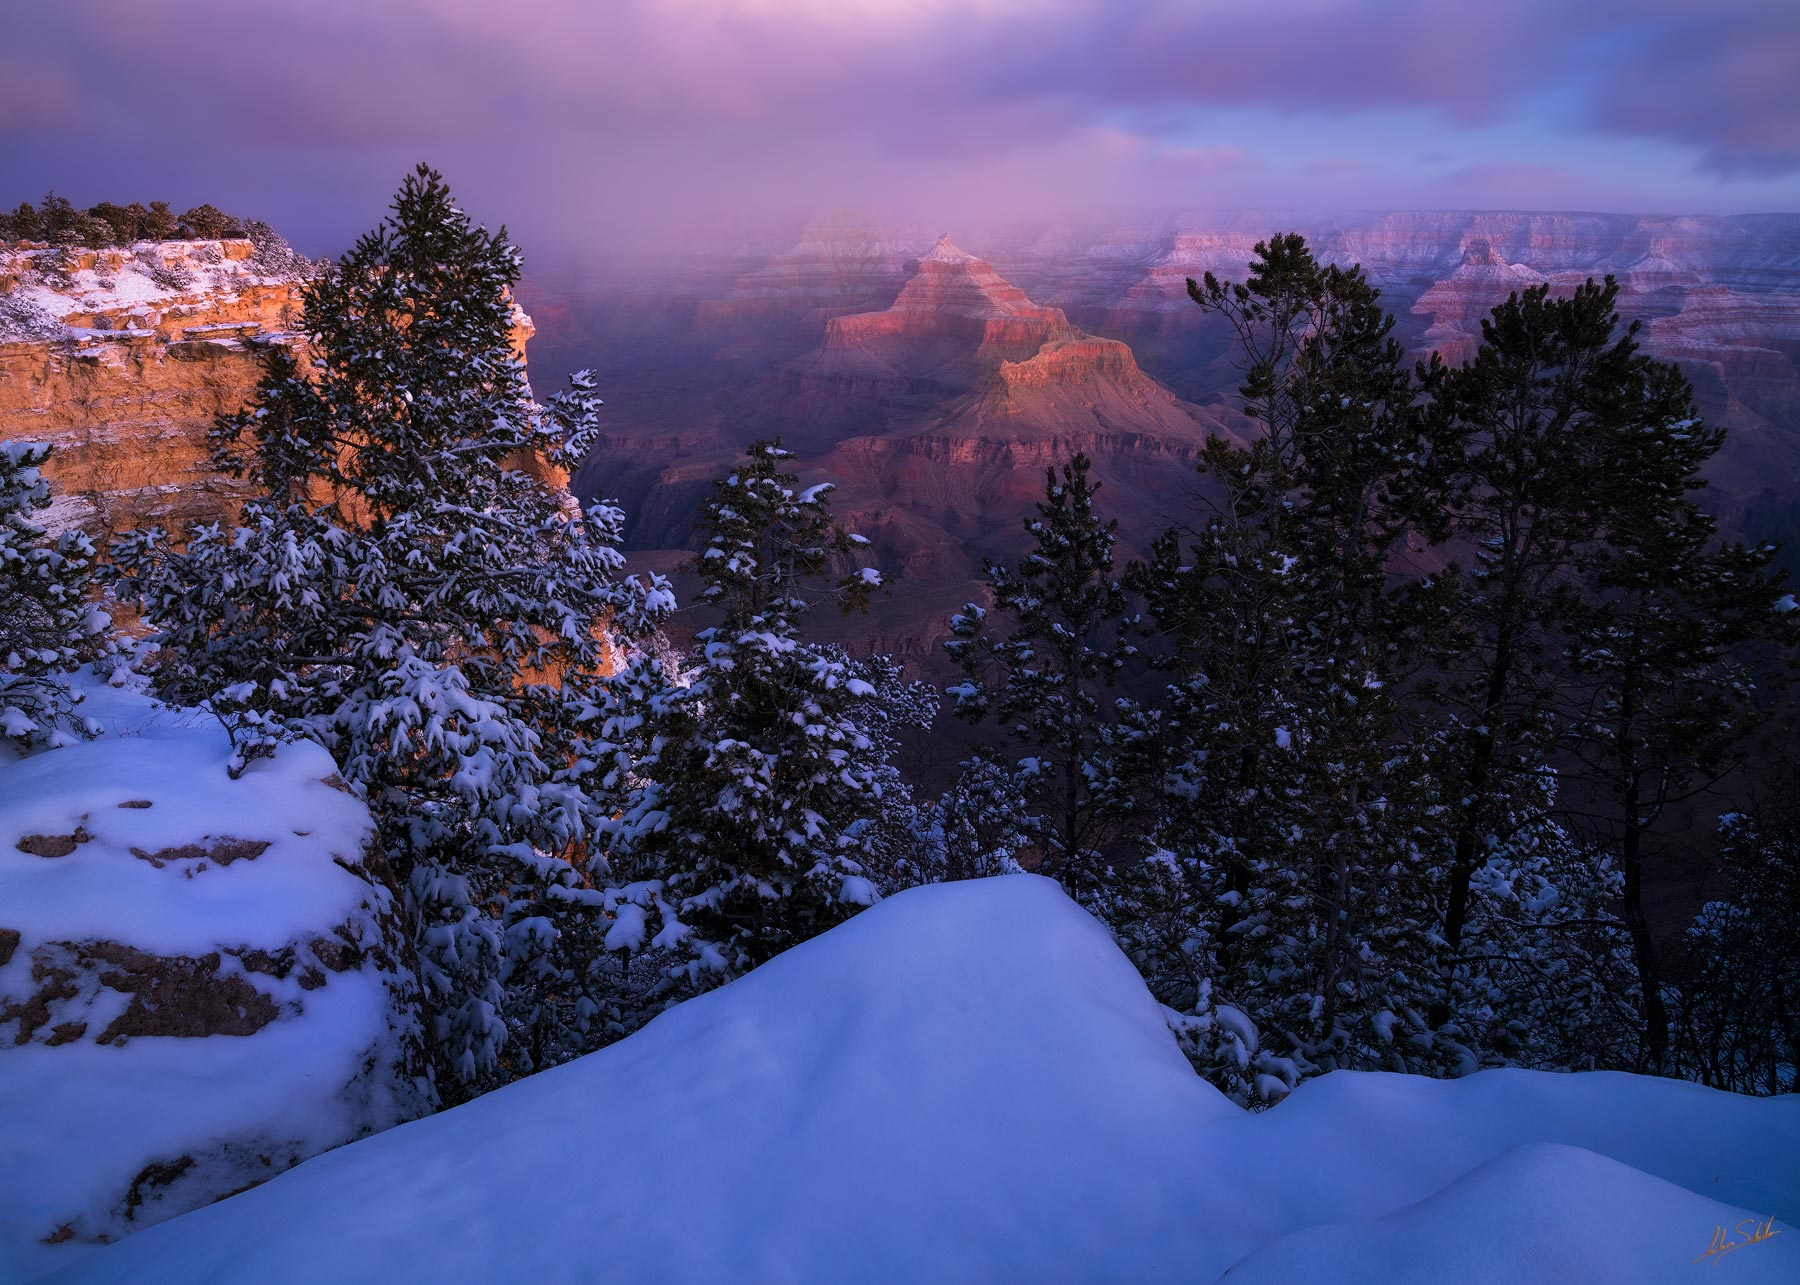 AZ, Arizona, Grand Canyon, Grand Canyon National Park, Isis Temple, National Park, South Rim, South Rim of the Grand Canyon, Winter, Winter at the Grand Canyon, photo